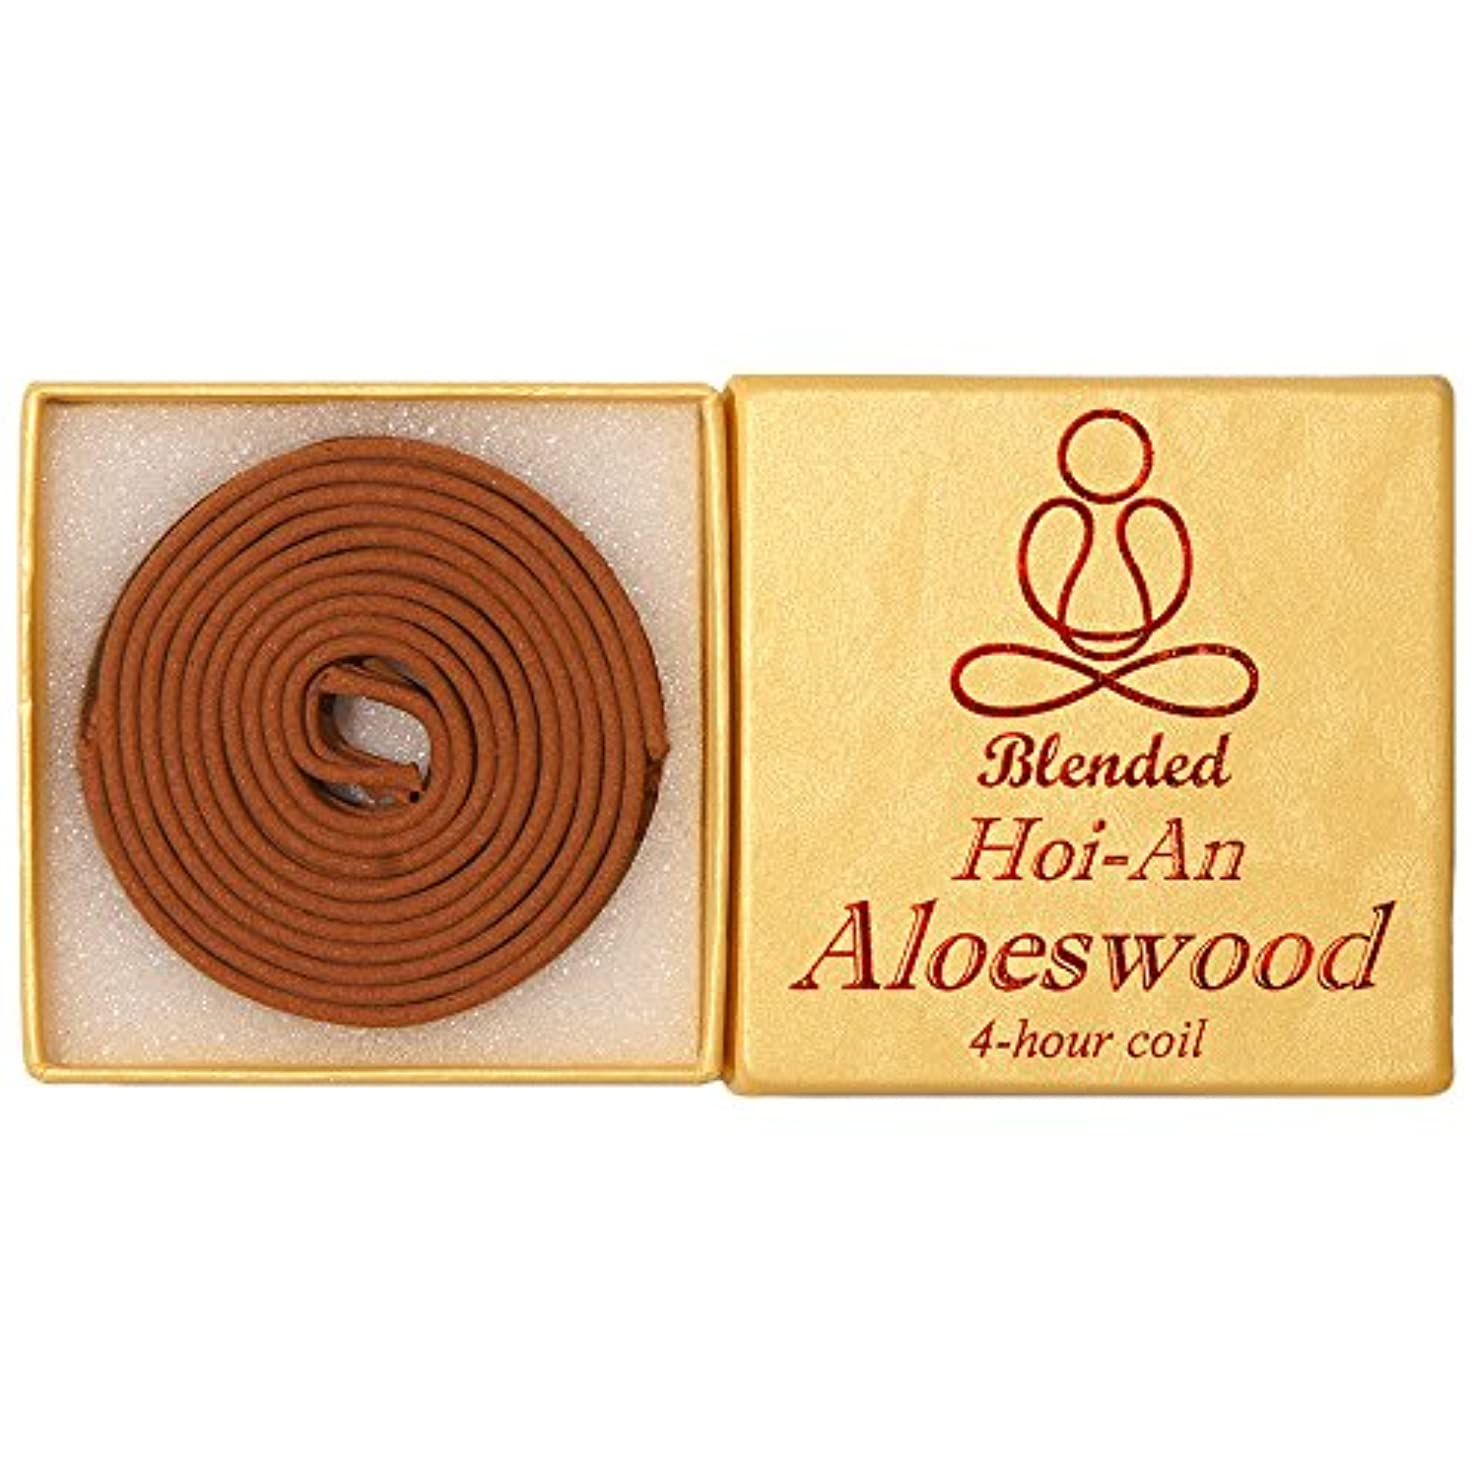 Blended Hoi-An Aloeswood - 12 pieces 4-hour Coil - 100% natural - GHC152T